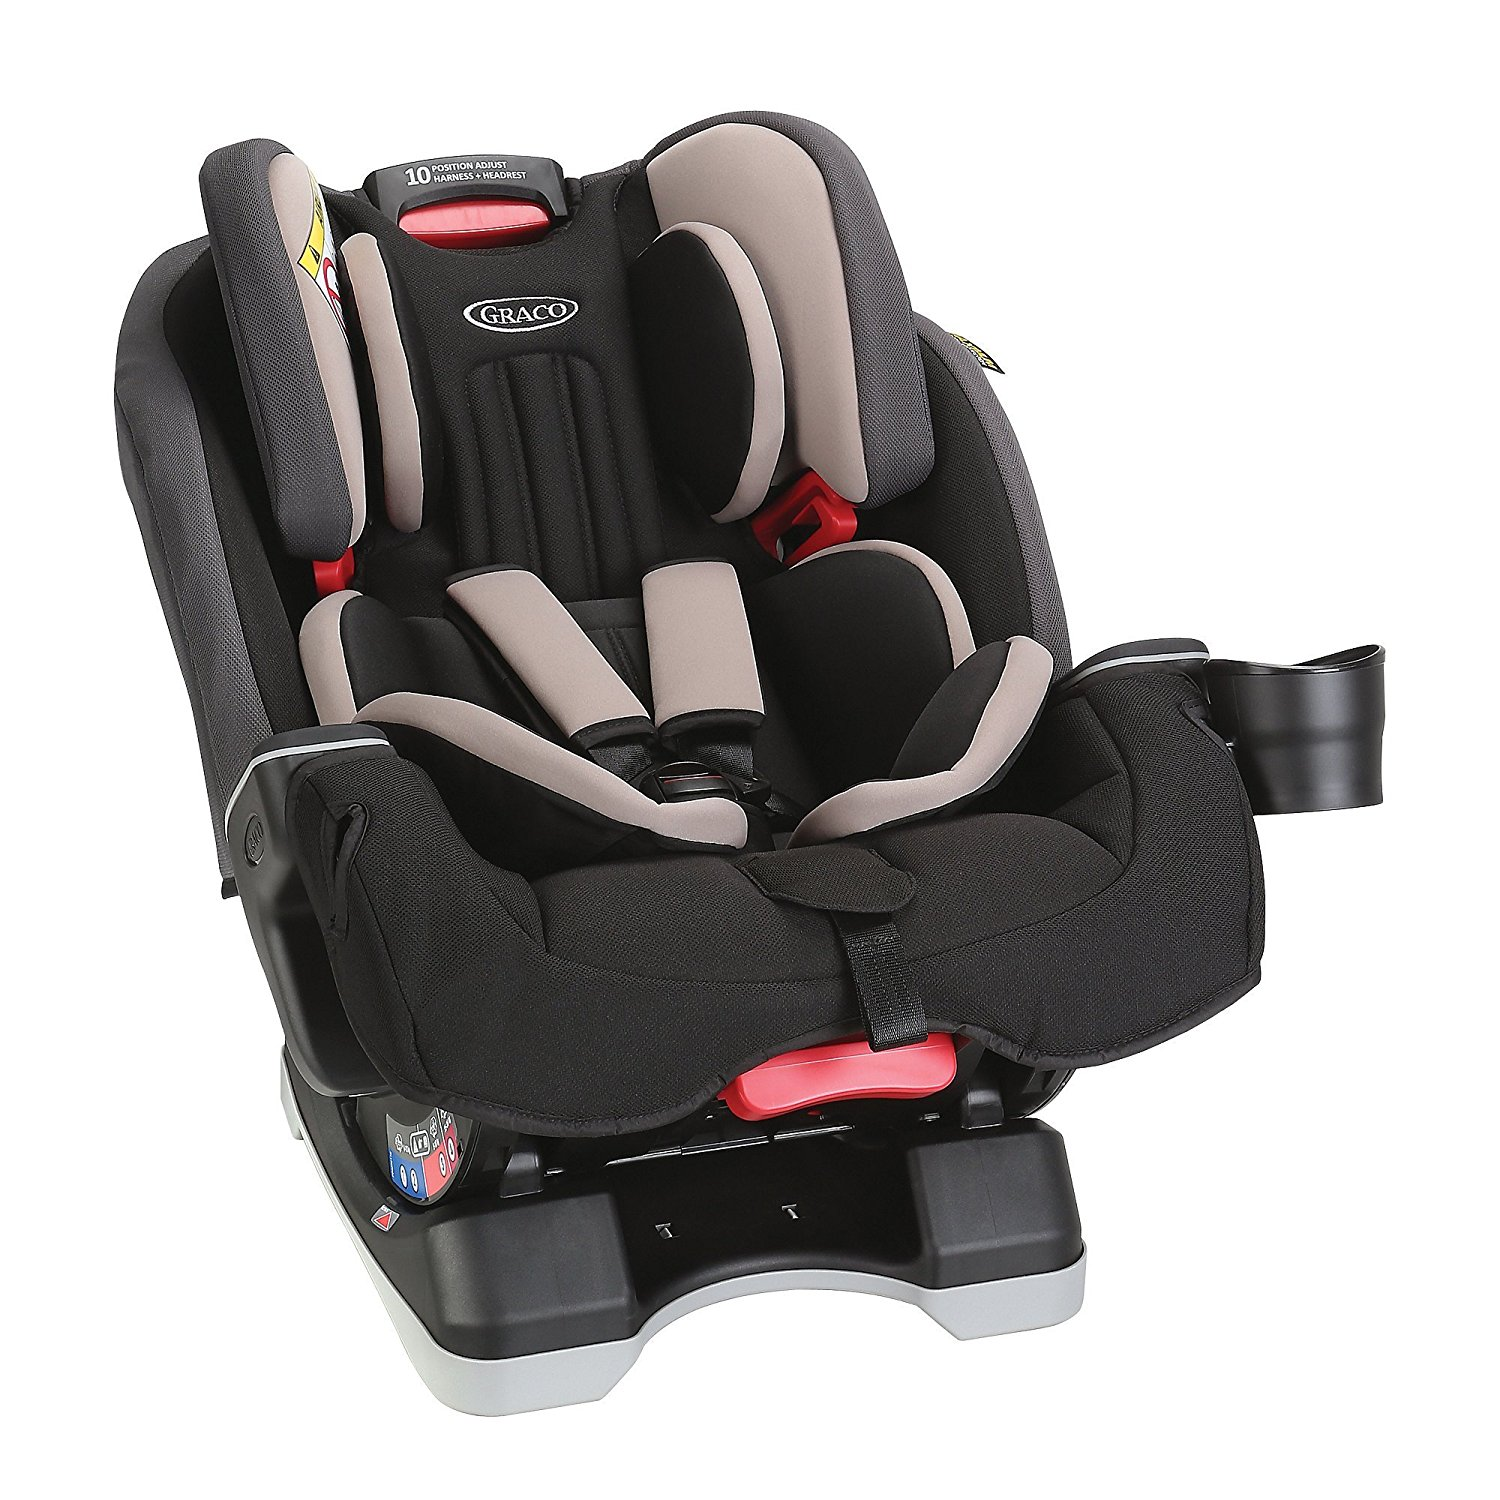 new graco milestone all in one high back booster car seat group 0 1 2 3 ebay. Black Bedroom Furniture Sets. Home Design Ideas